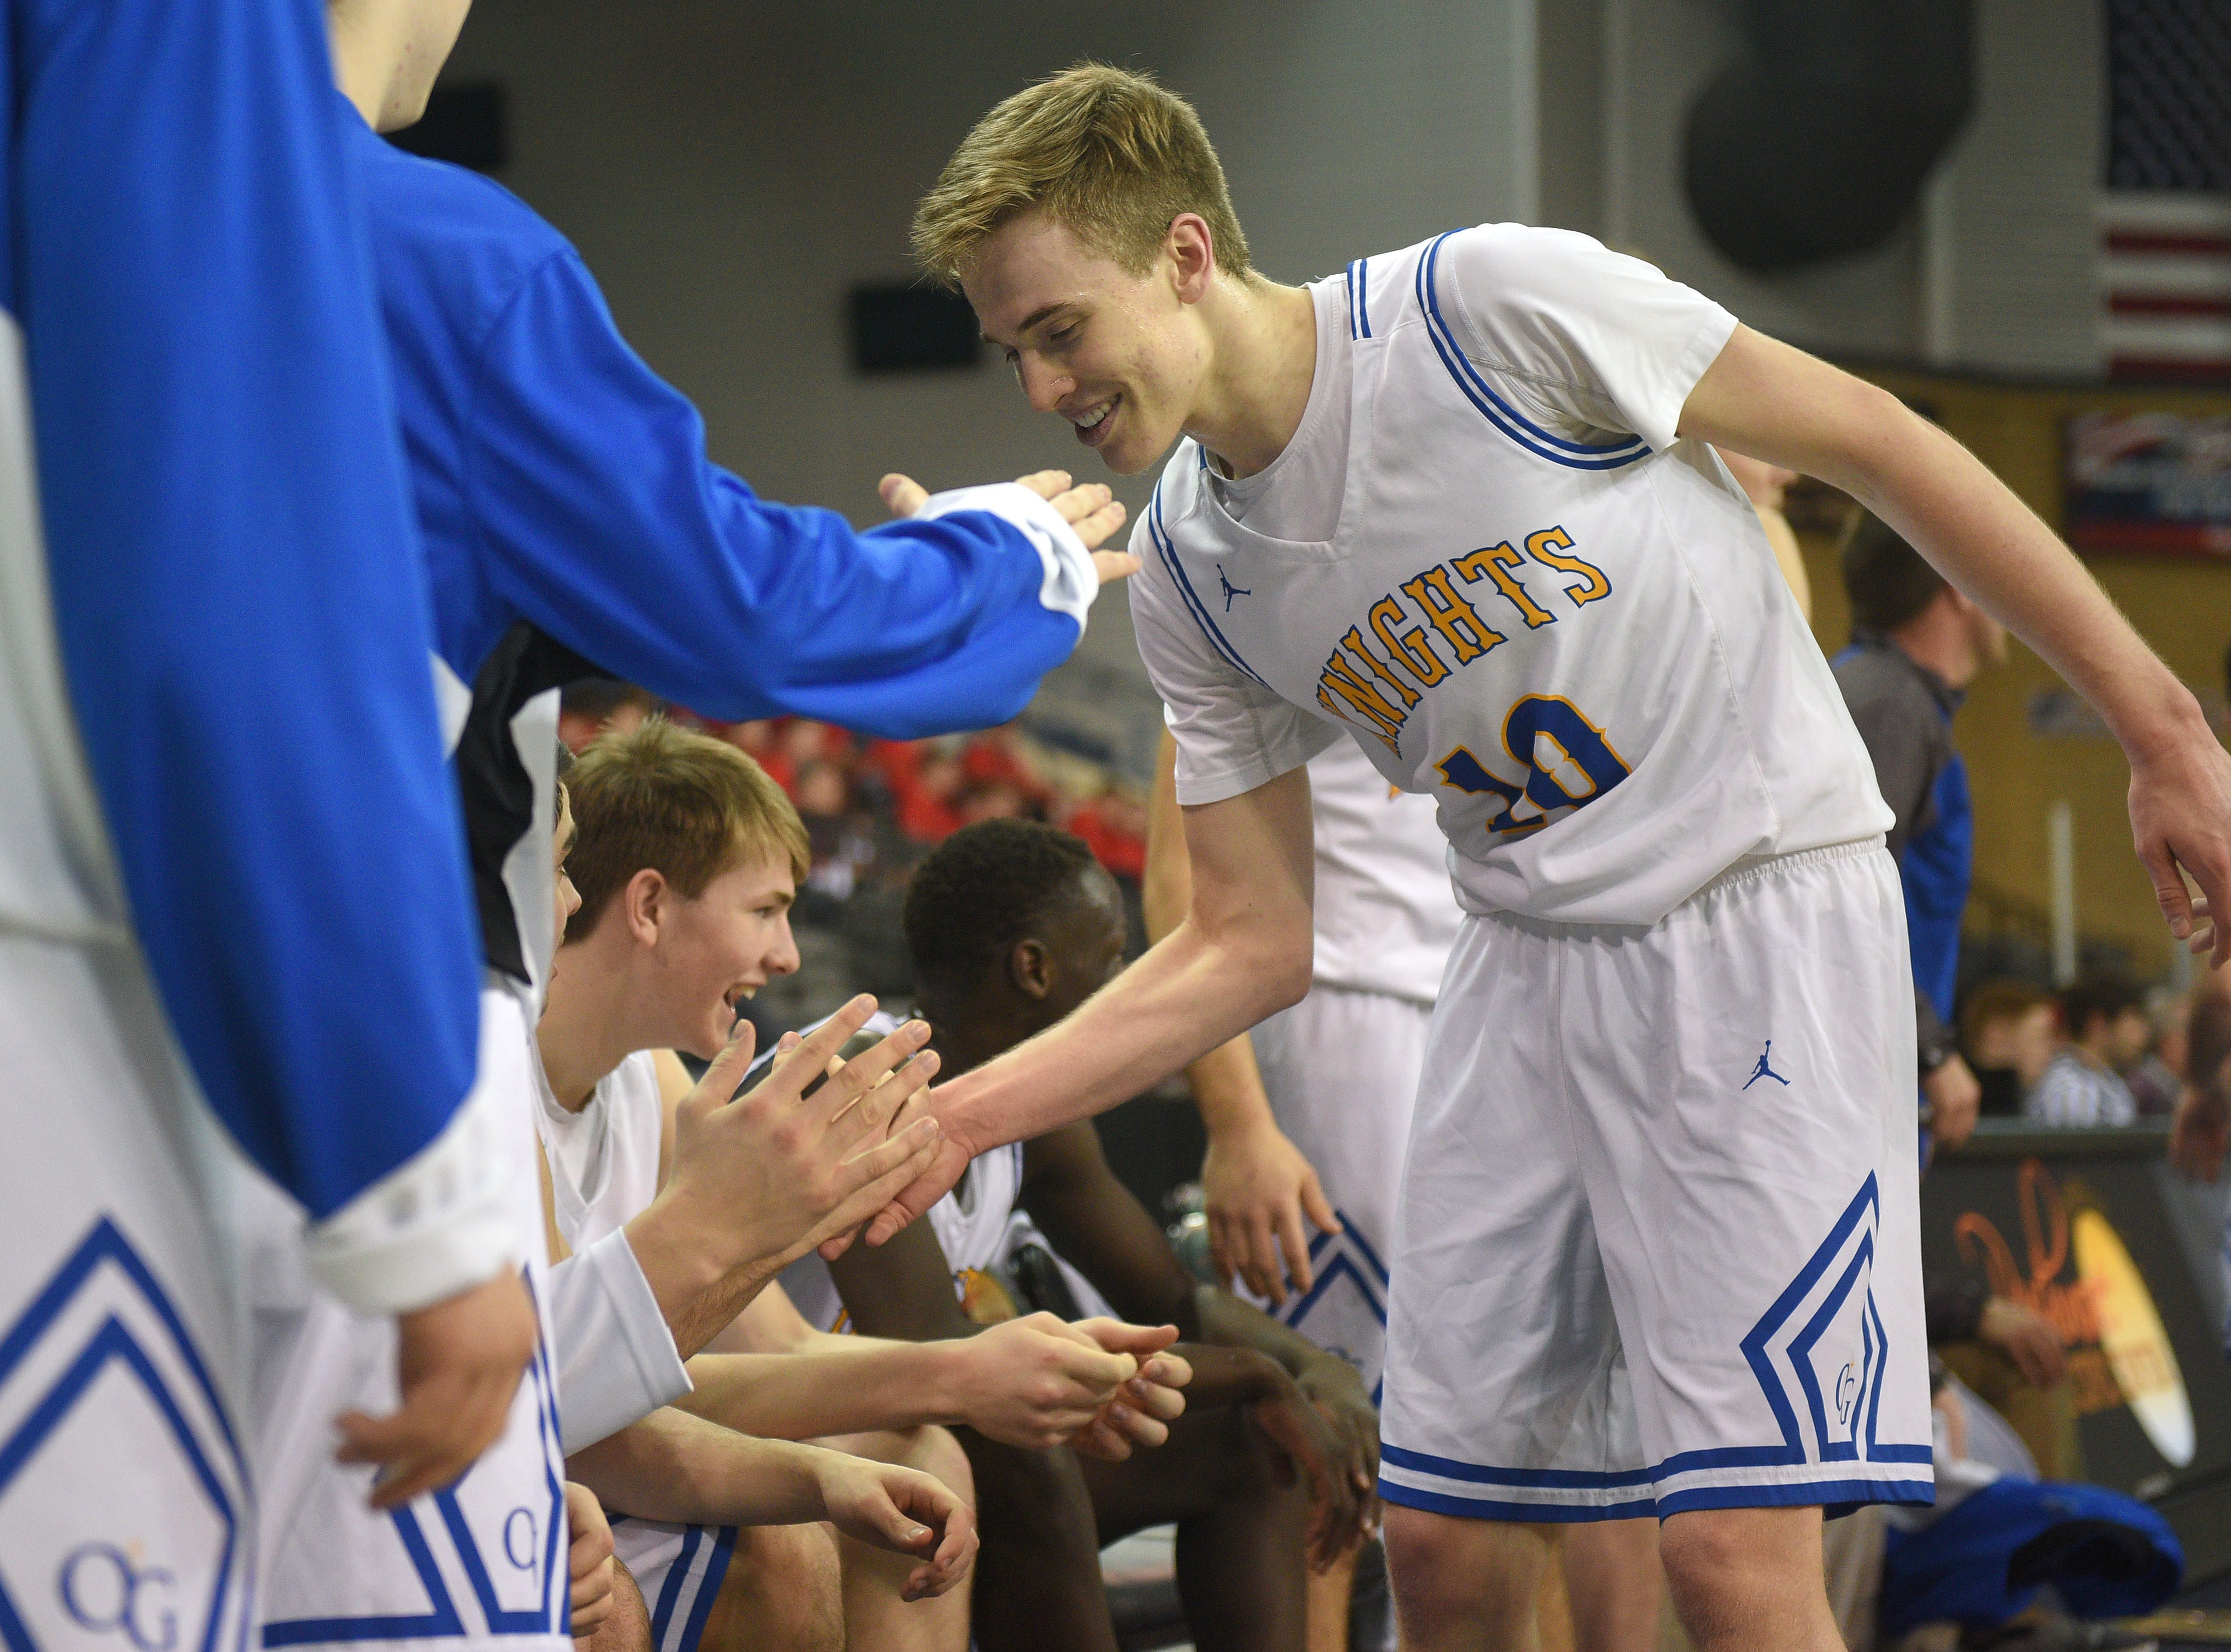 O'Gorman's Jack Cartwright high fives his teammates in the last seconds of the game against Roosevelt in the Class AA quarterfinals Thursday, March 14, in Rapid City.